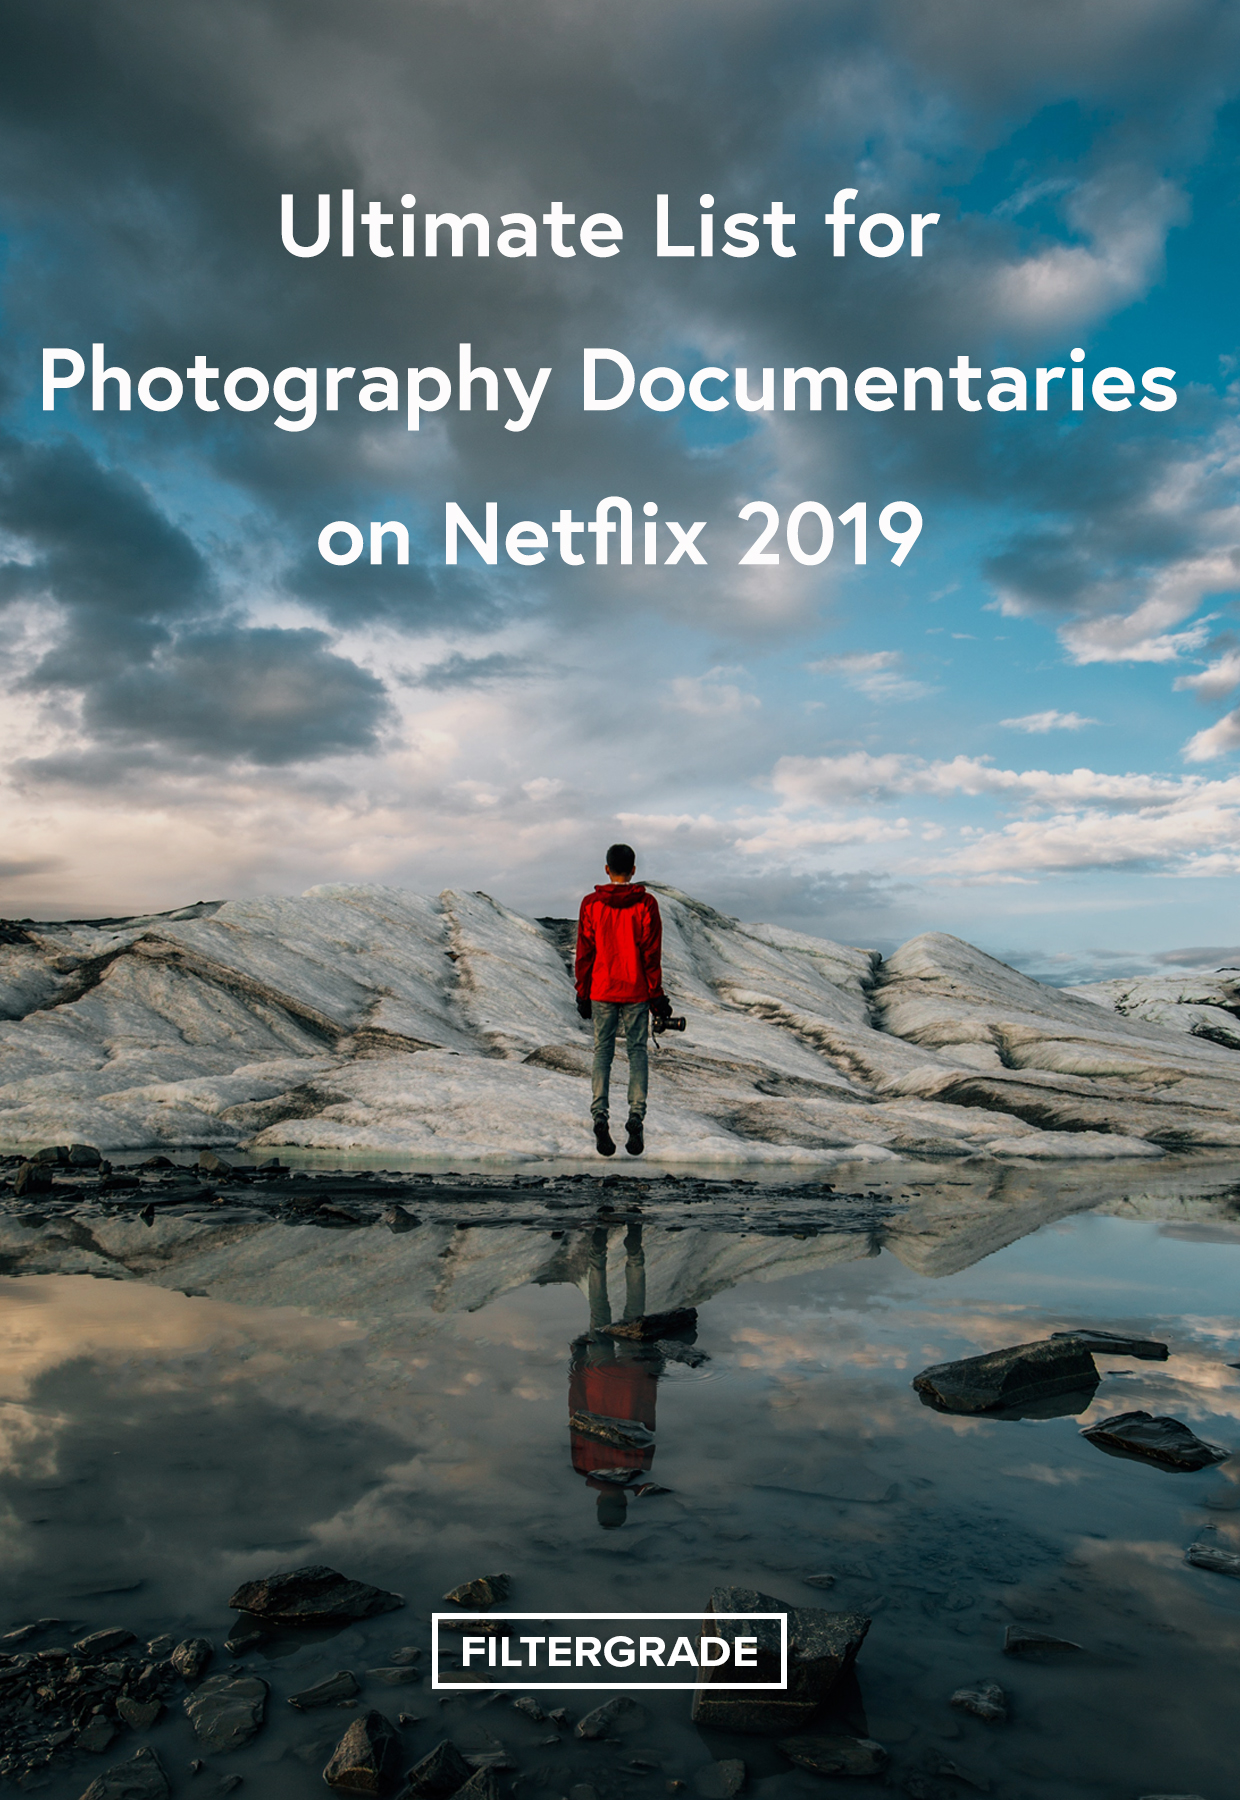 Ultimate List for Photography Documentaries on Netflix 2019